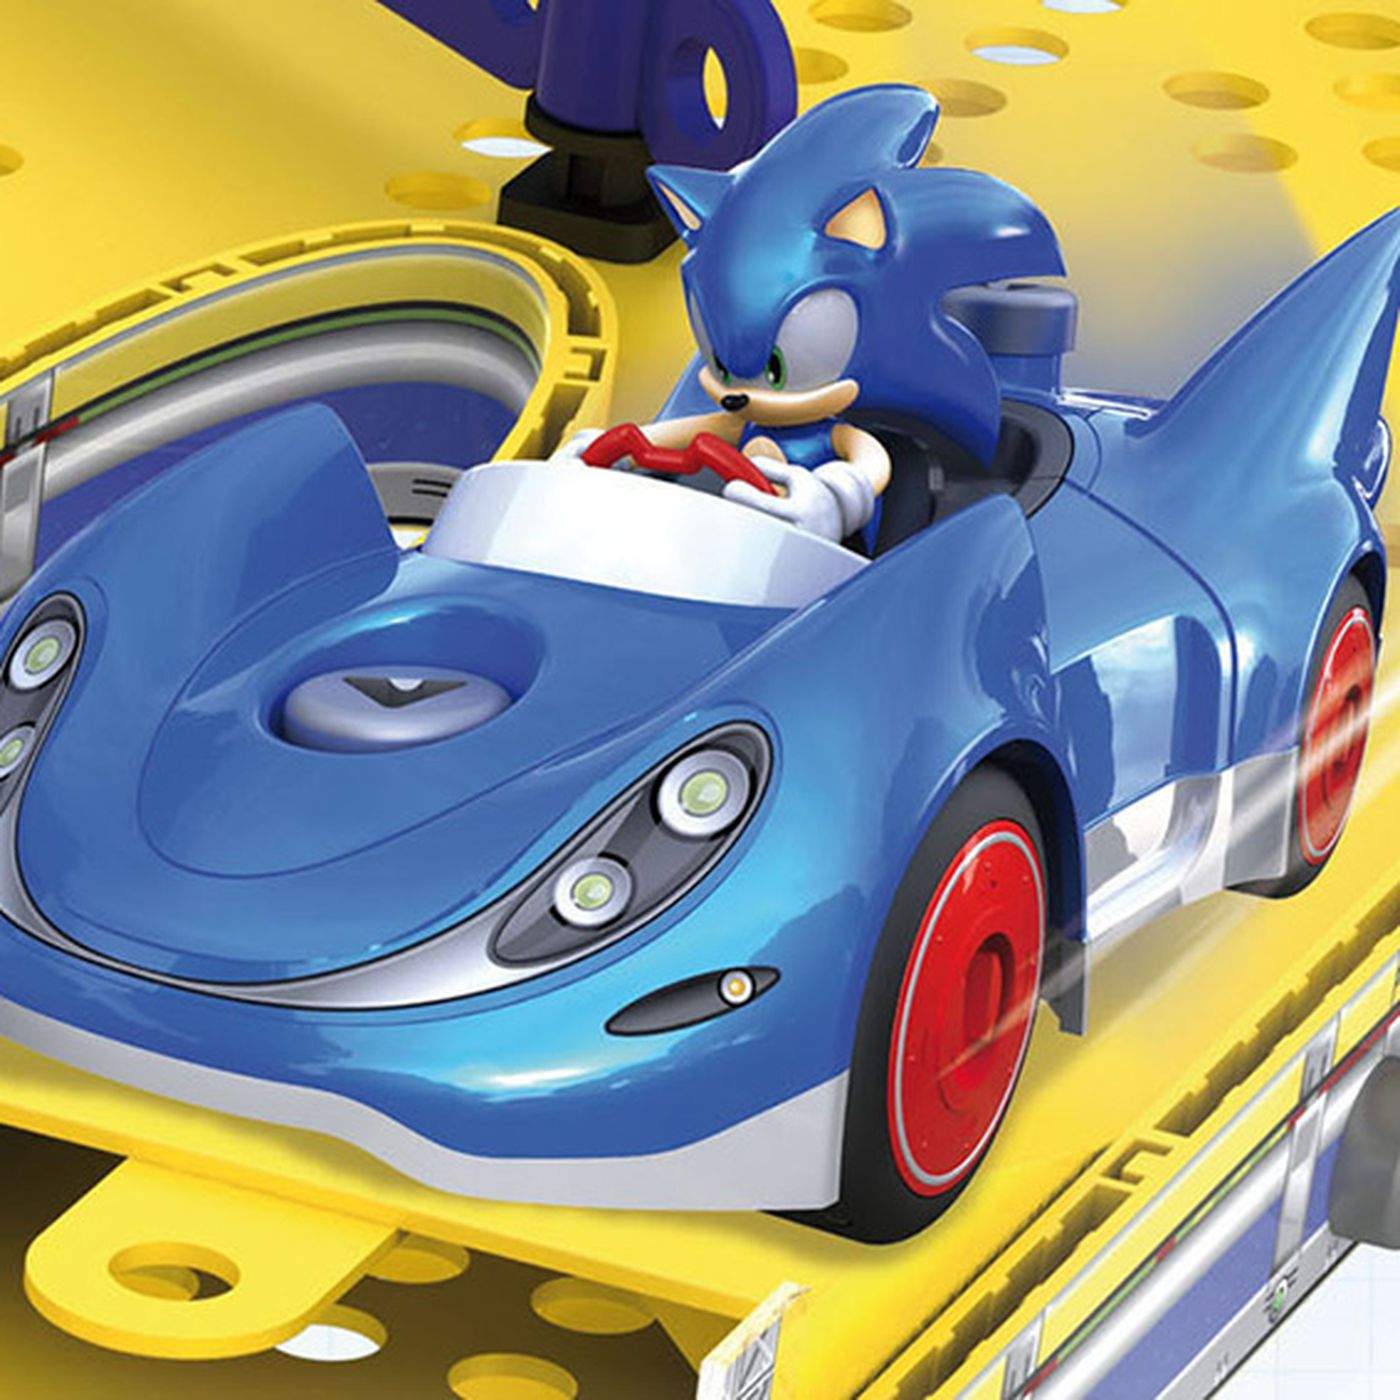 Sonic The Hedgehog Erector Sets Now Available At Toys R Us Polygon